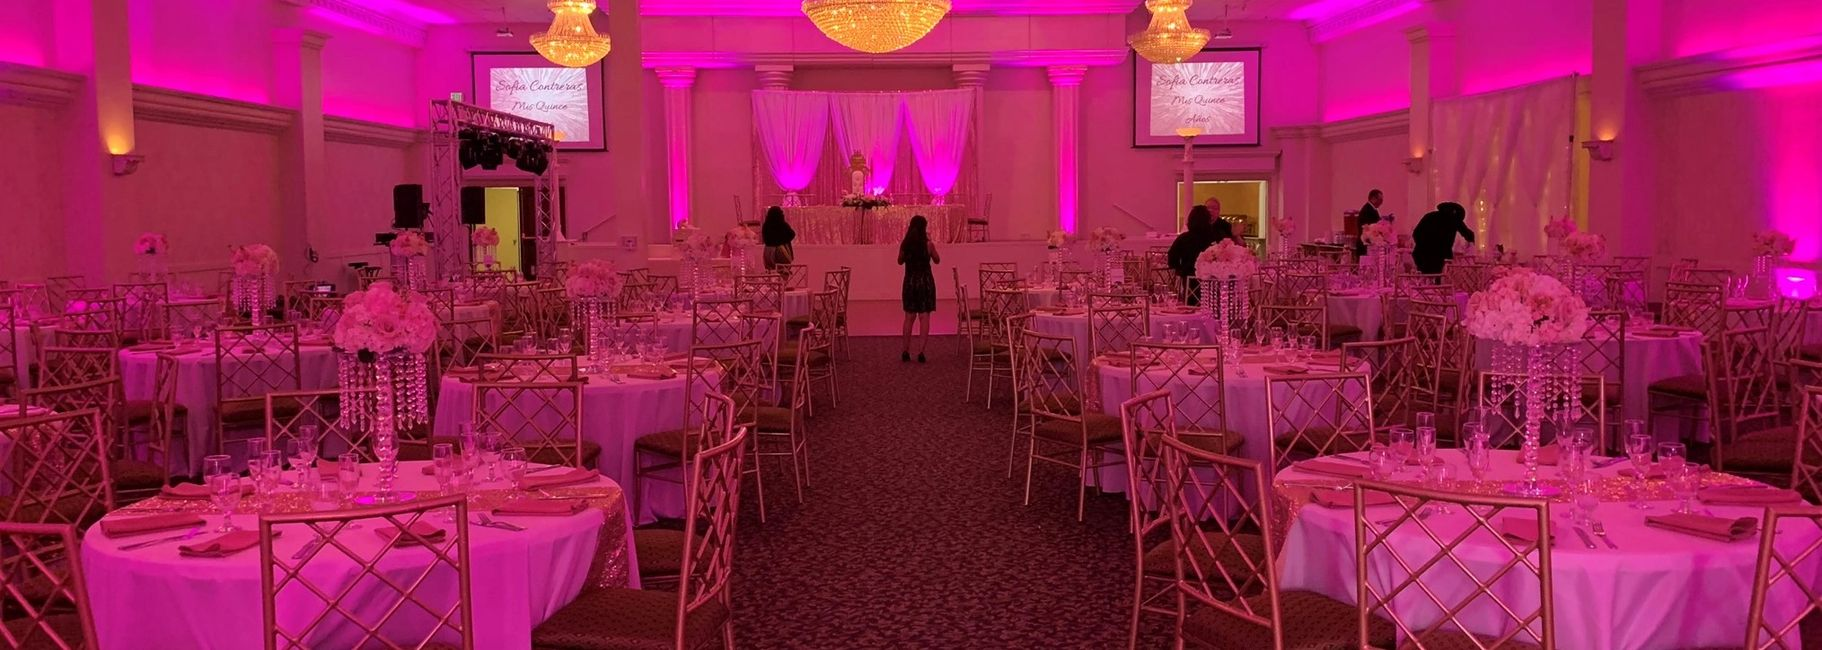 wedding planning services  by Bay City Events, San Joe